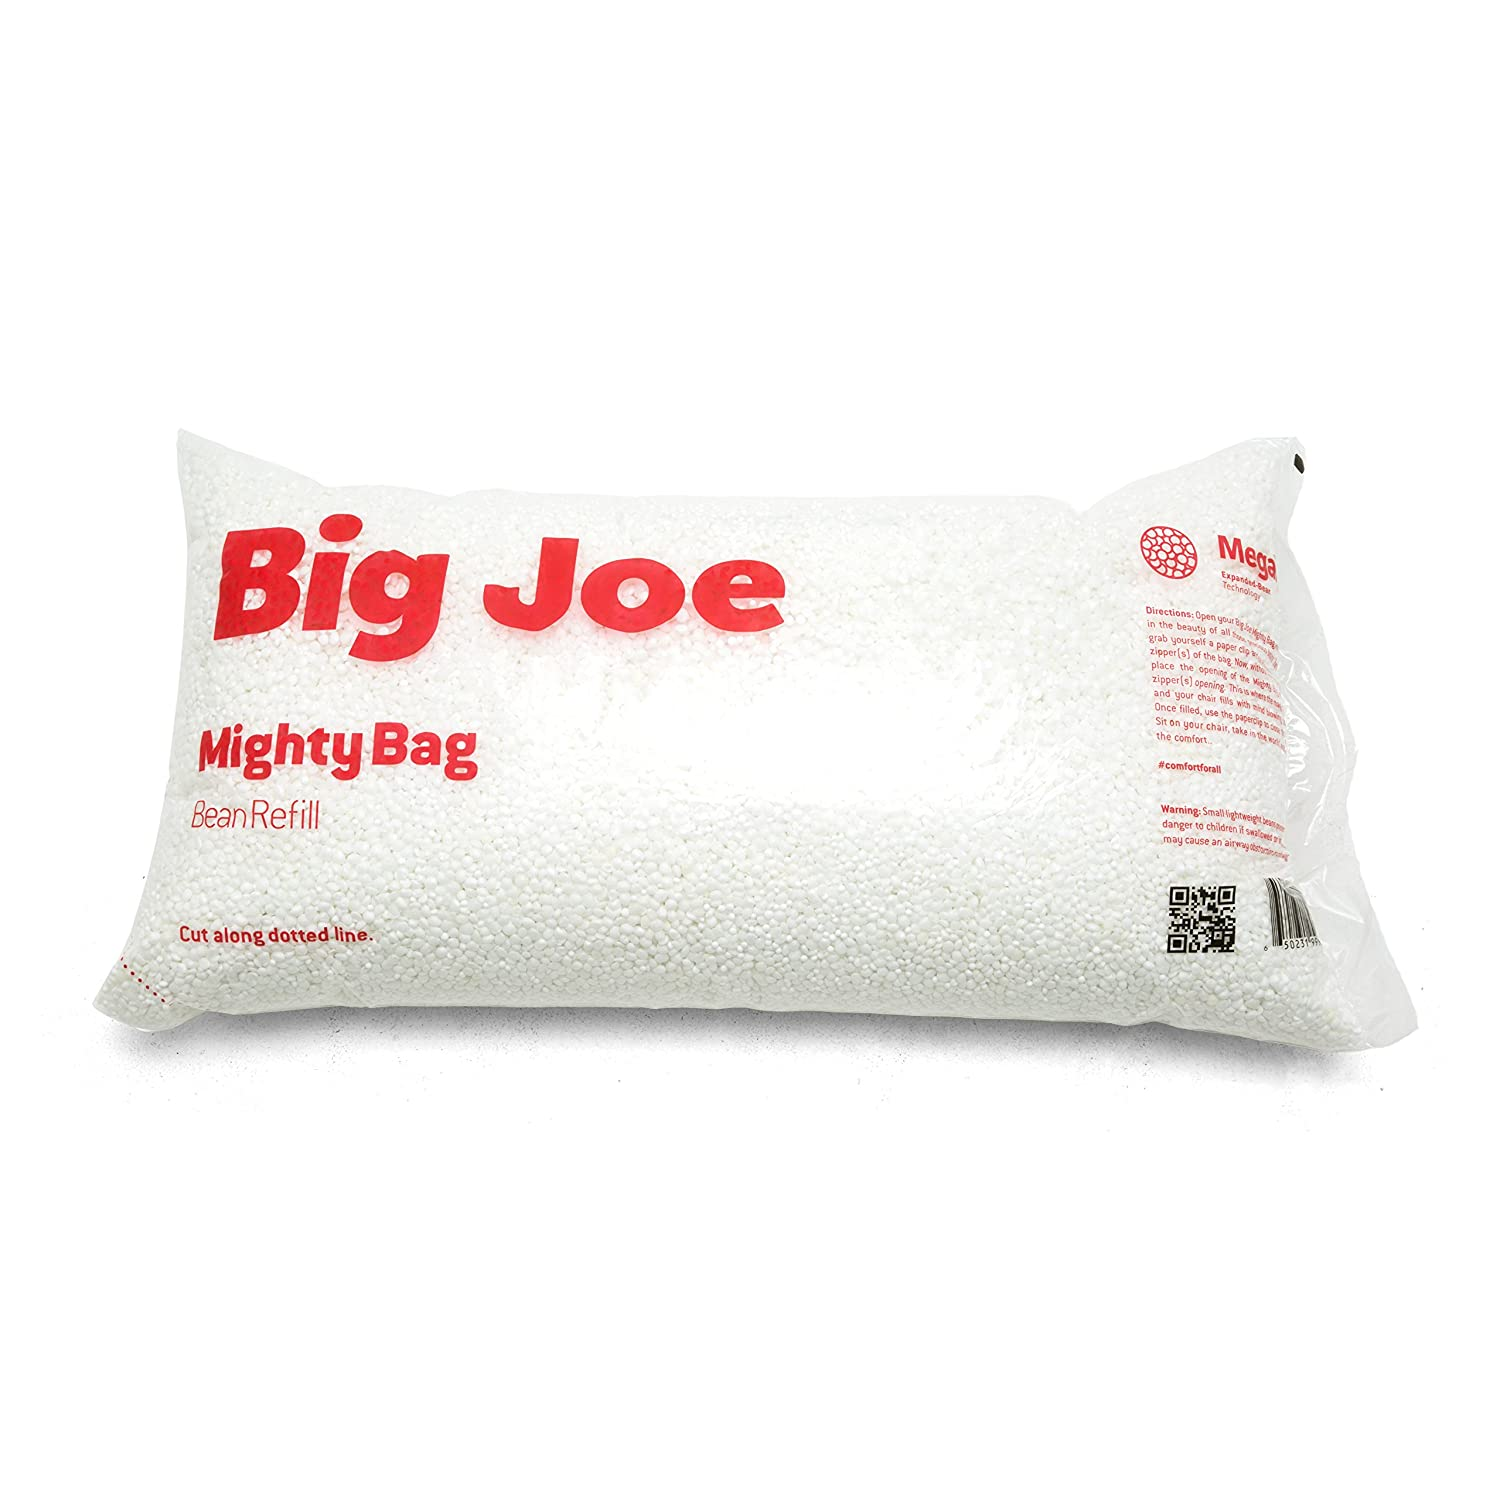 Big Joe Comfort Research Megahh UltimaX Bean Bags Refill, 100 L, White –